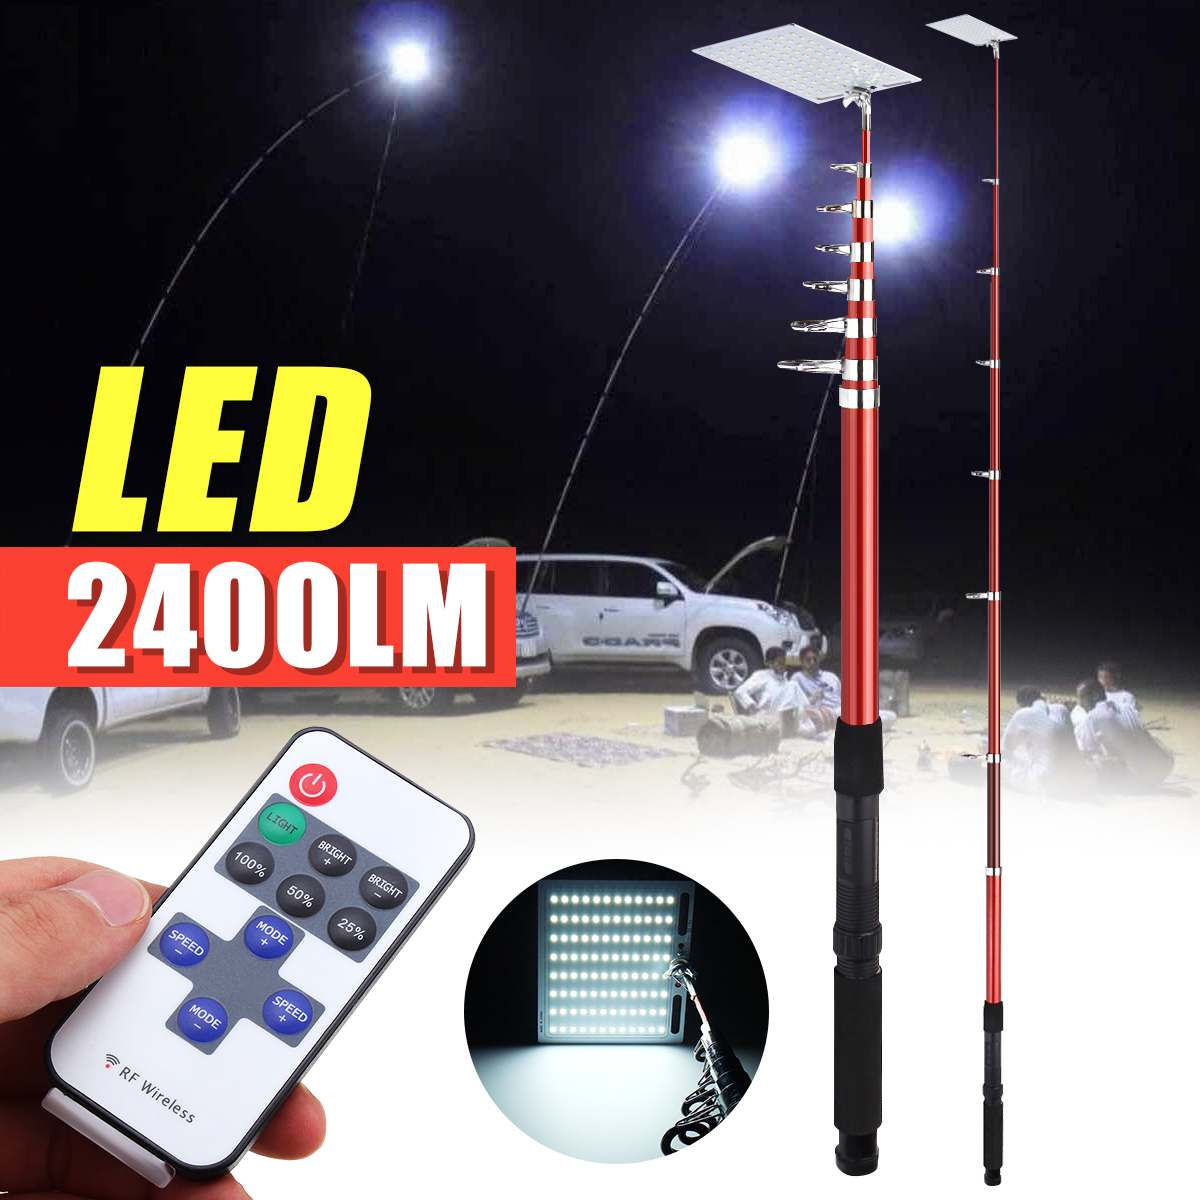 Us 29 54 38 Off 2400lm 12v Fishing Lamp Rf Remote Control Telescopic Camping Lantern Tackle Accessories Portable Outdoor Lighting In